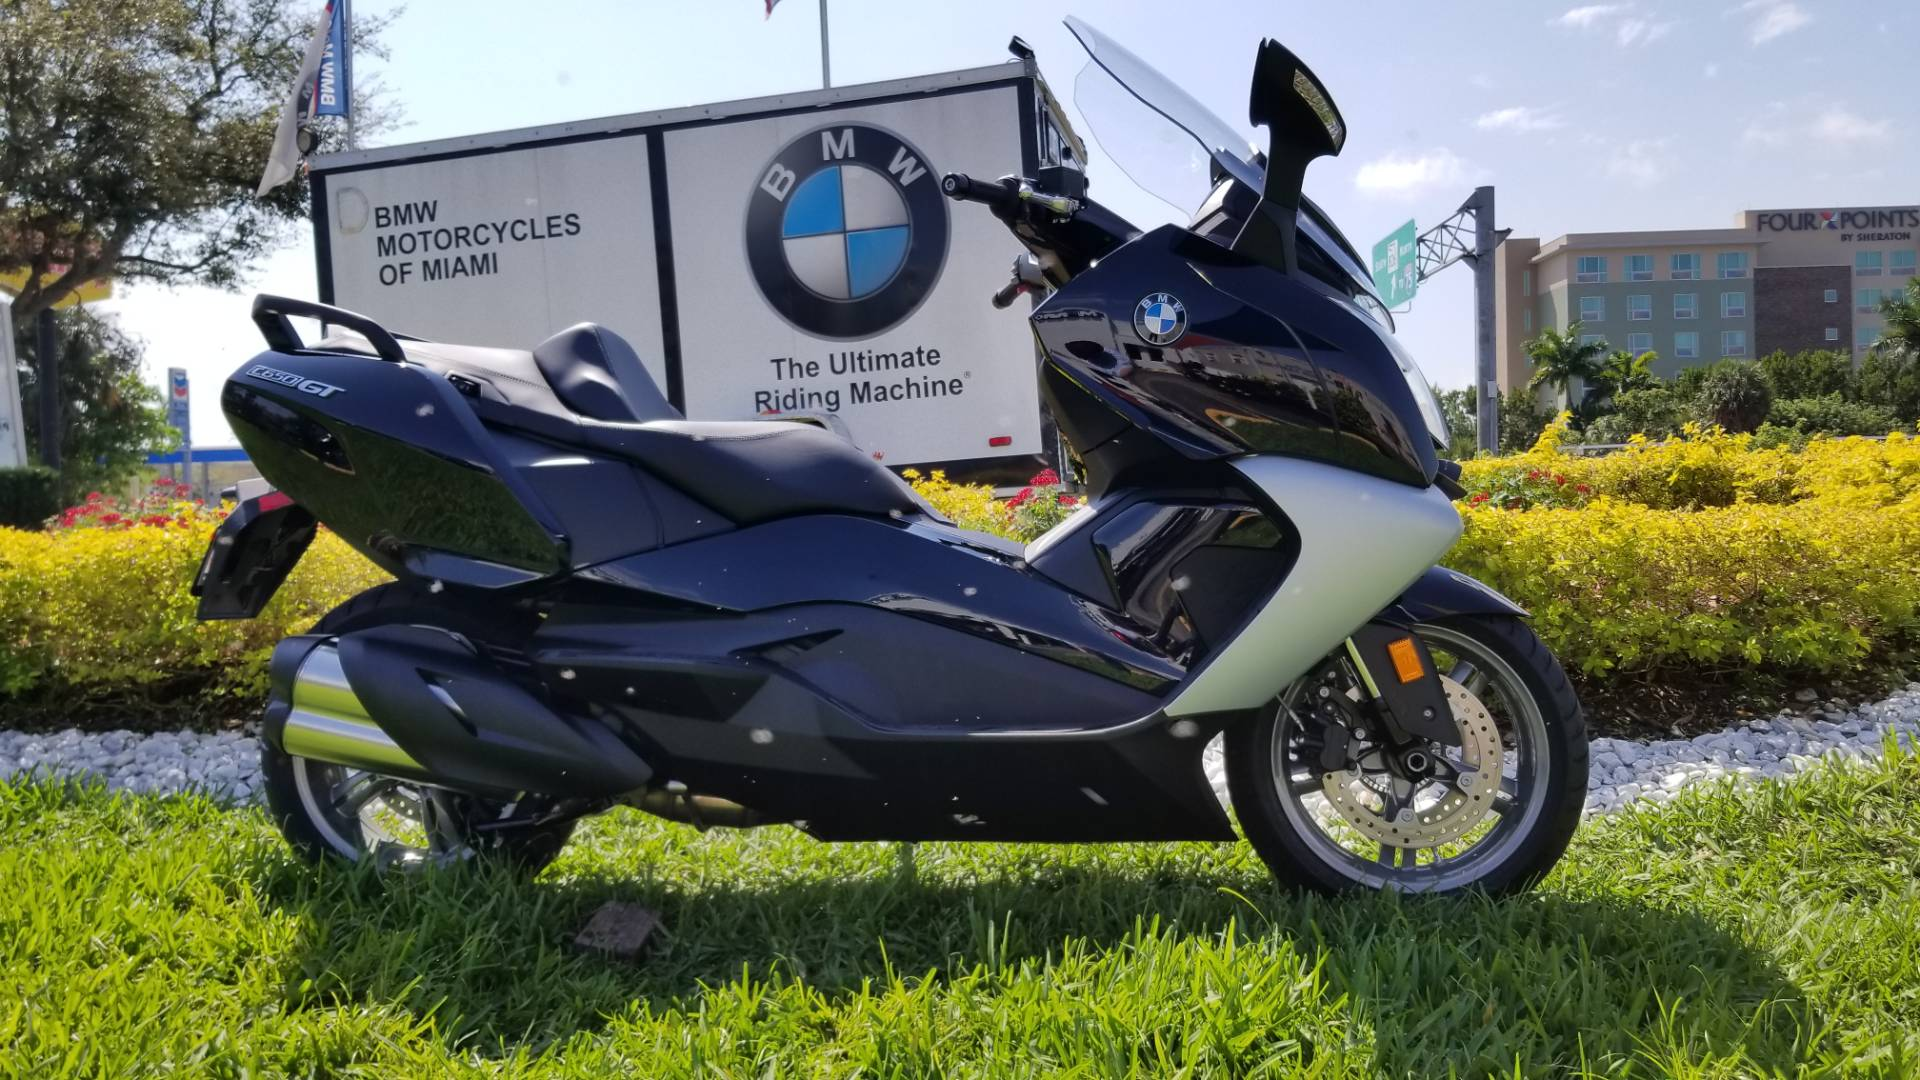 New 2019 BMW C 650 GT for sale, BMW C 650GT for sale, BMW Motorcycle C650GT, new BMW Scooter, Maxi Scooter, BMW. BMW Motorcycles of Miami, Motorcycles of Miami, Motorcycles Miami, New Motorcycles, Used Motorcycles, pre-owned. #BMWMotorcyclesOfMiami #MotorcyclesOfMiami #MotorcyclesMiami - Photo 15